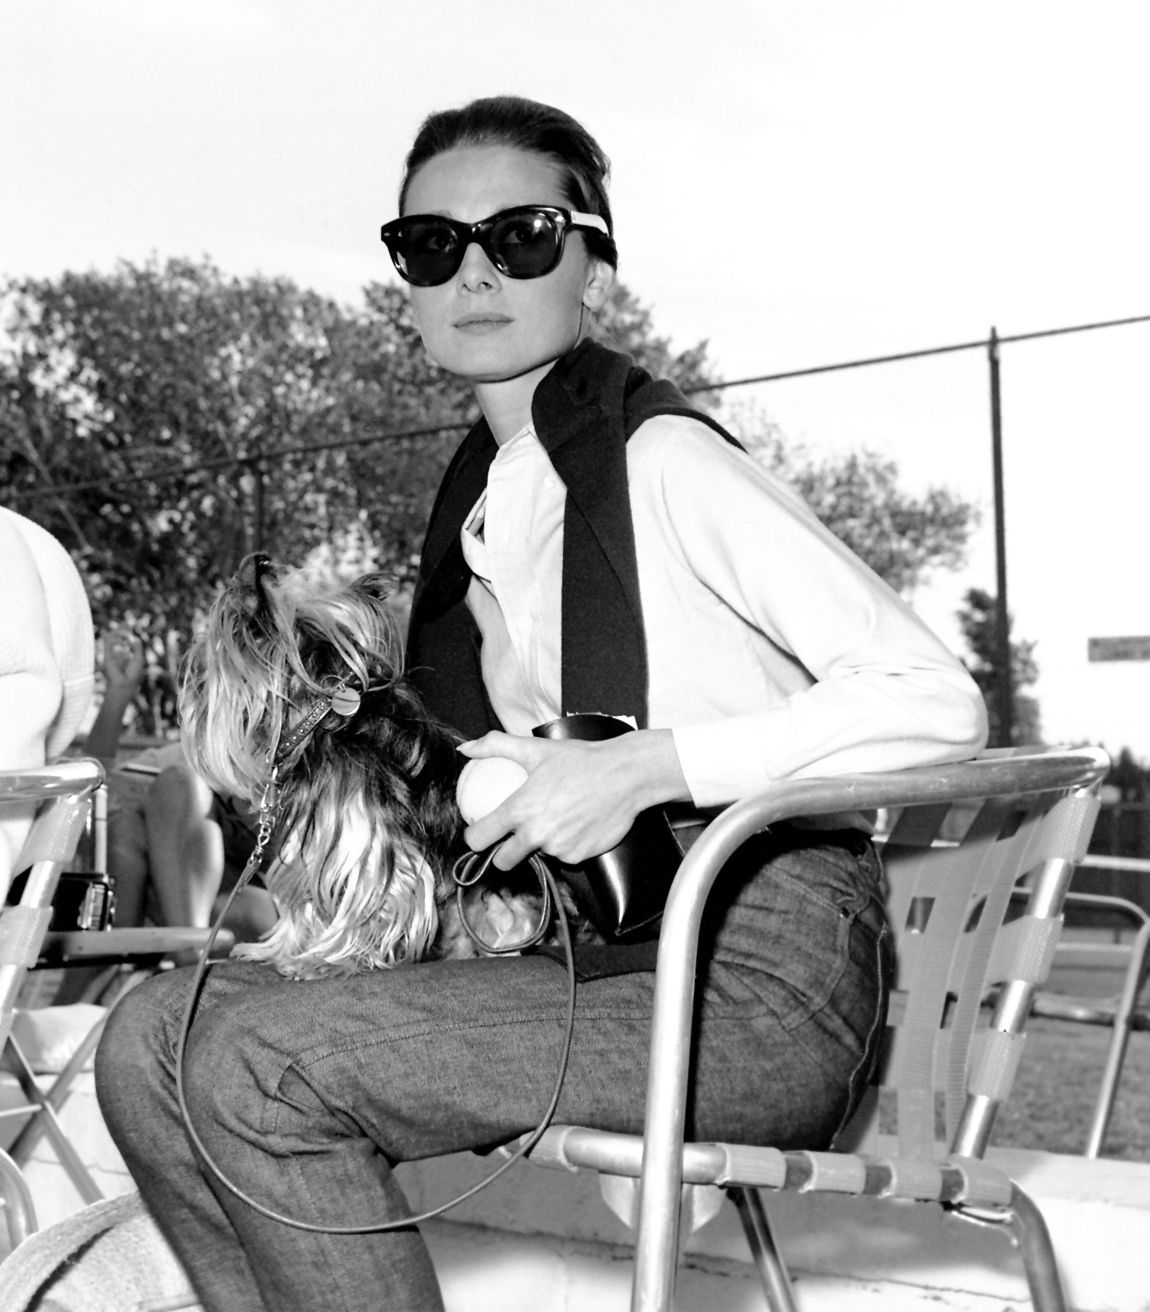 Yorkie haircuts and yorkie grooming resources rachael edwards - Audrey Hepburn With Her Yorkshire Terrier Mr Famous In Palm Springs California August